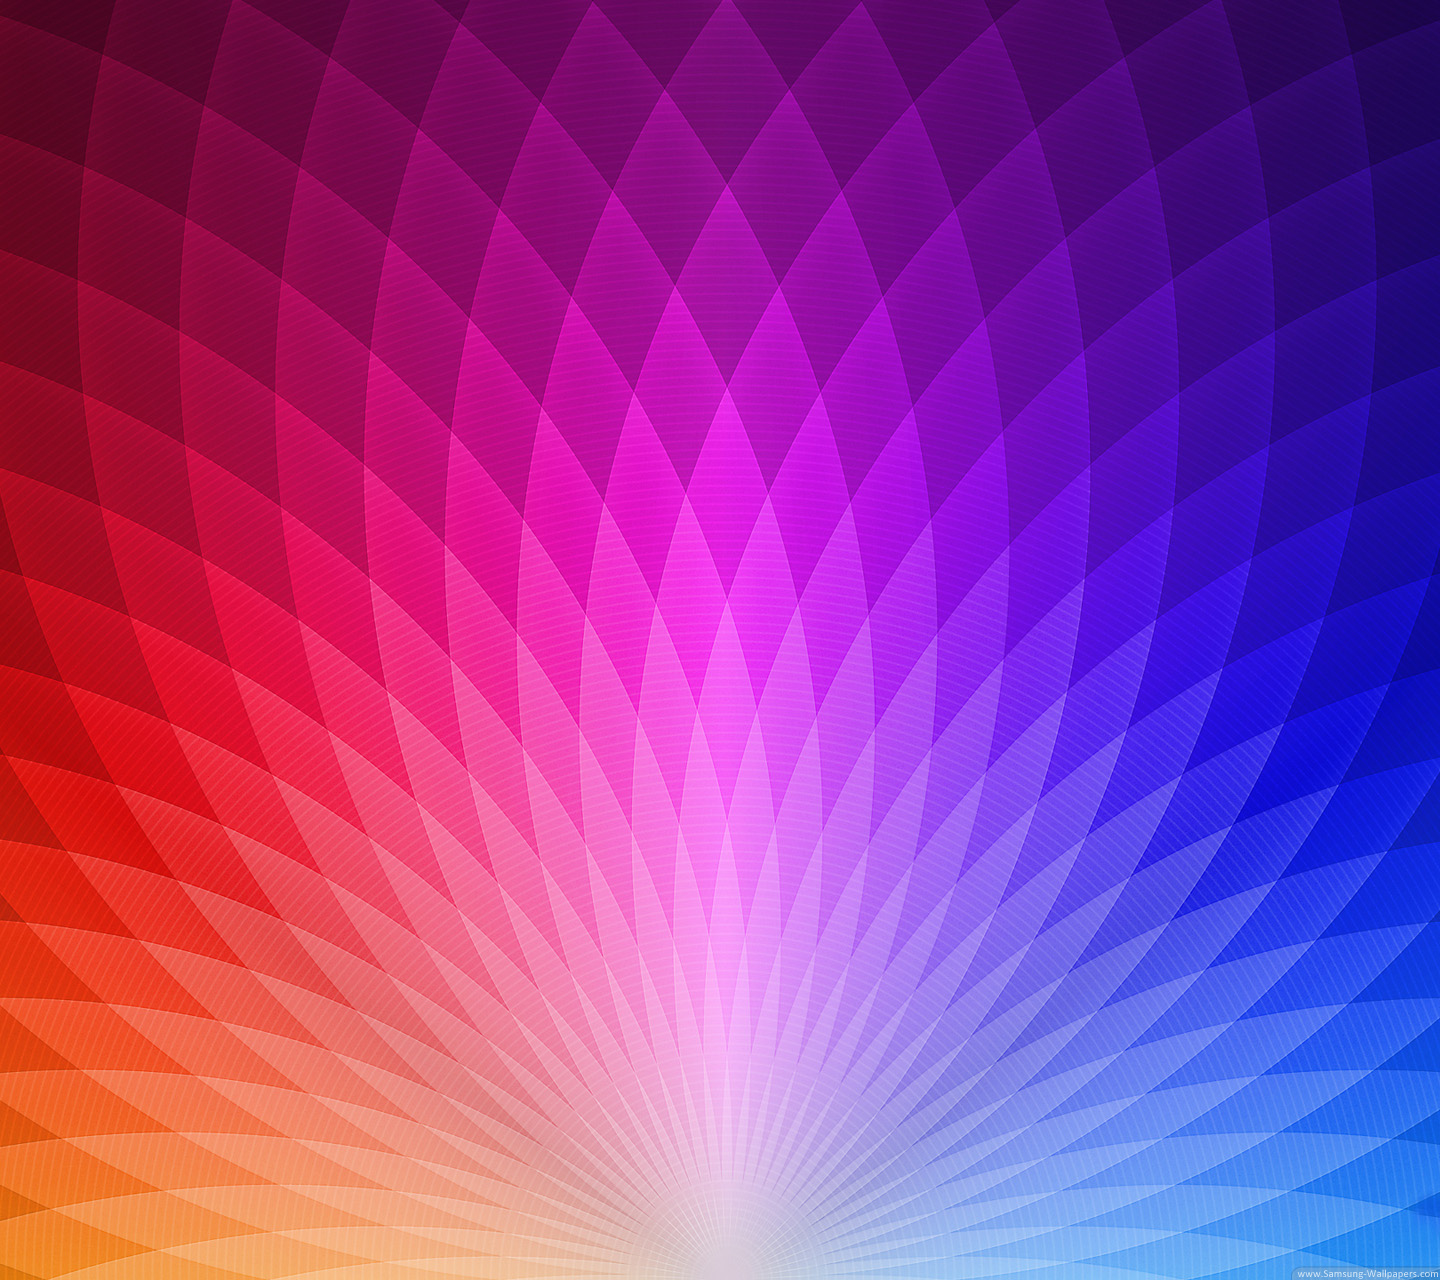 Download Best Lock Screen Android APK Collection Of Iphone Wallpaper On HDWallpapers 1440x1280